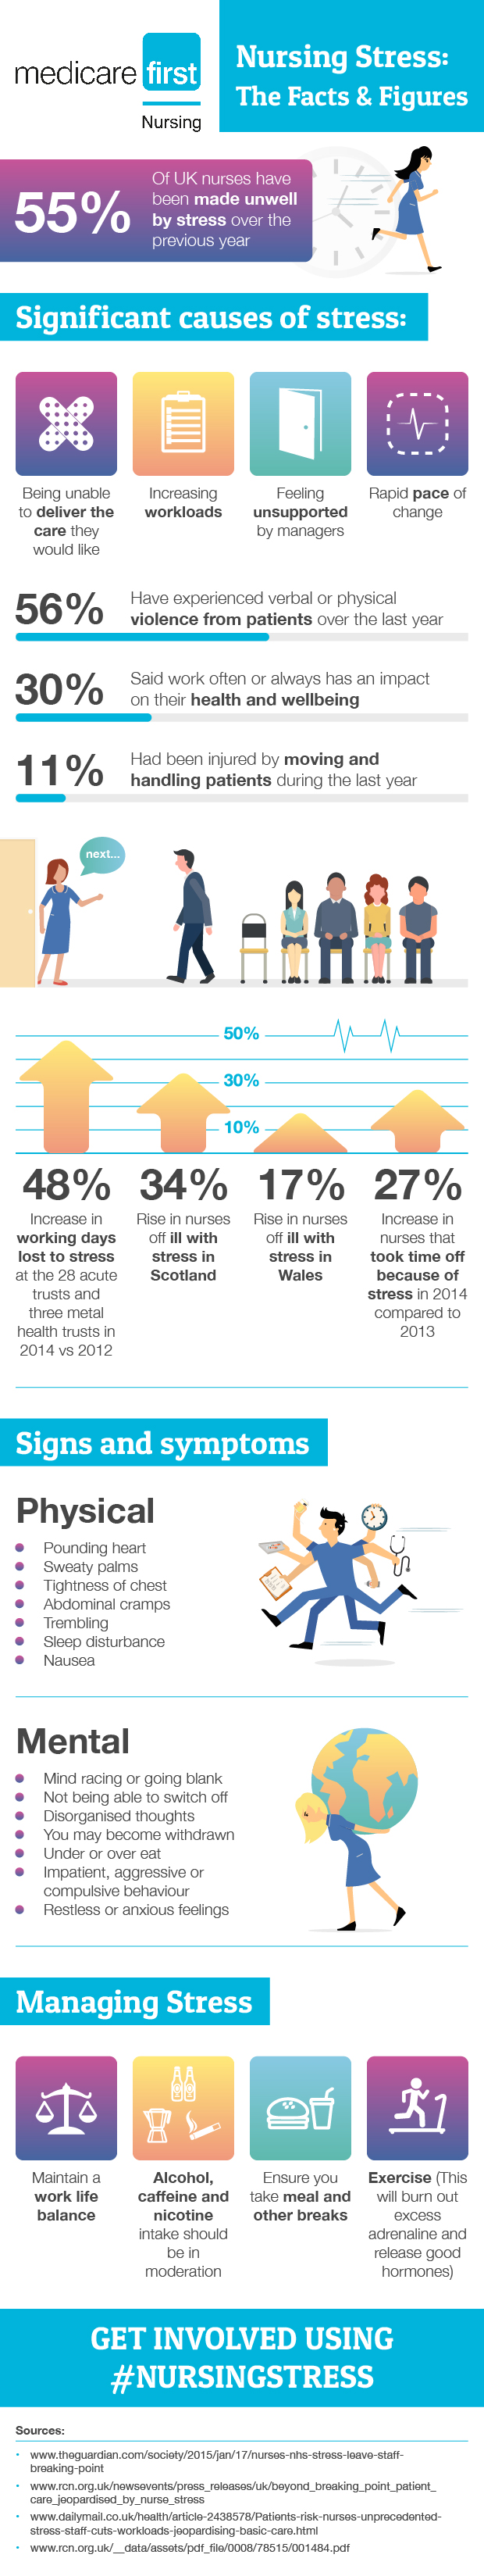 Nursing and Stress Infographic